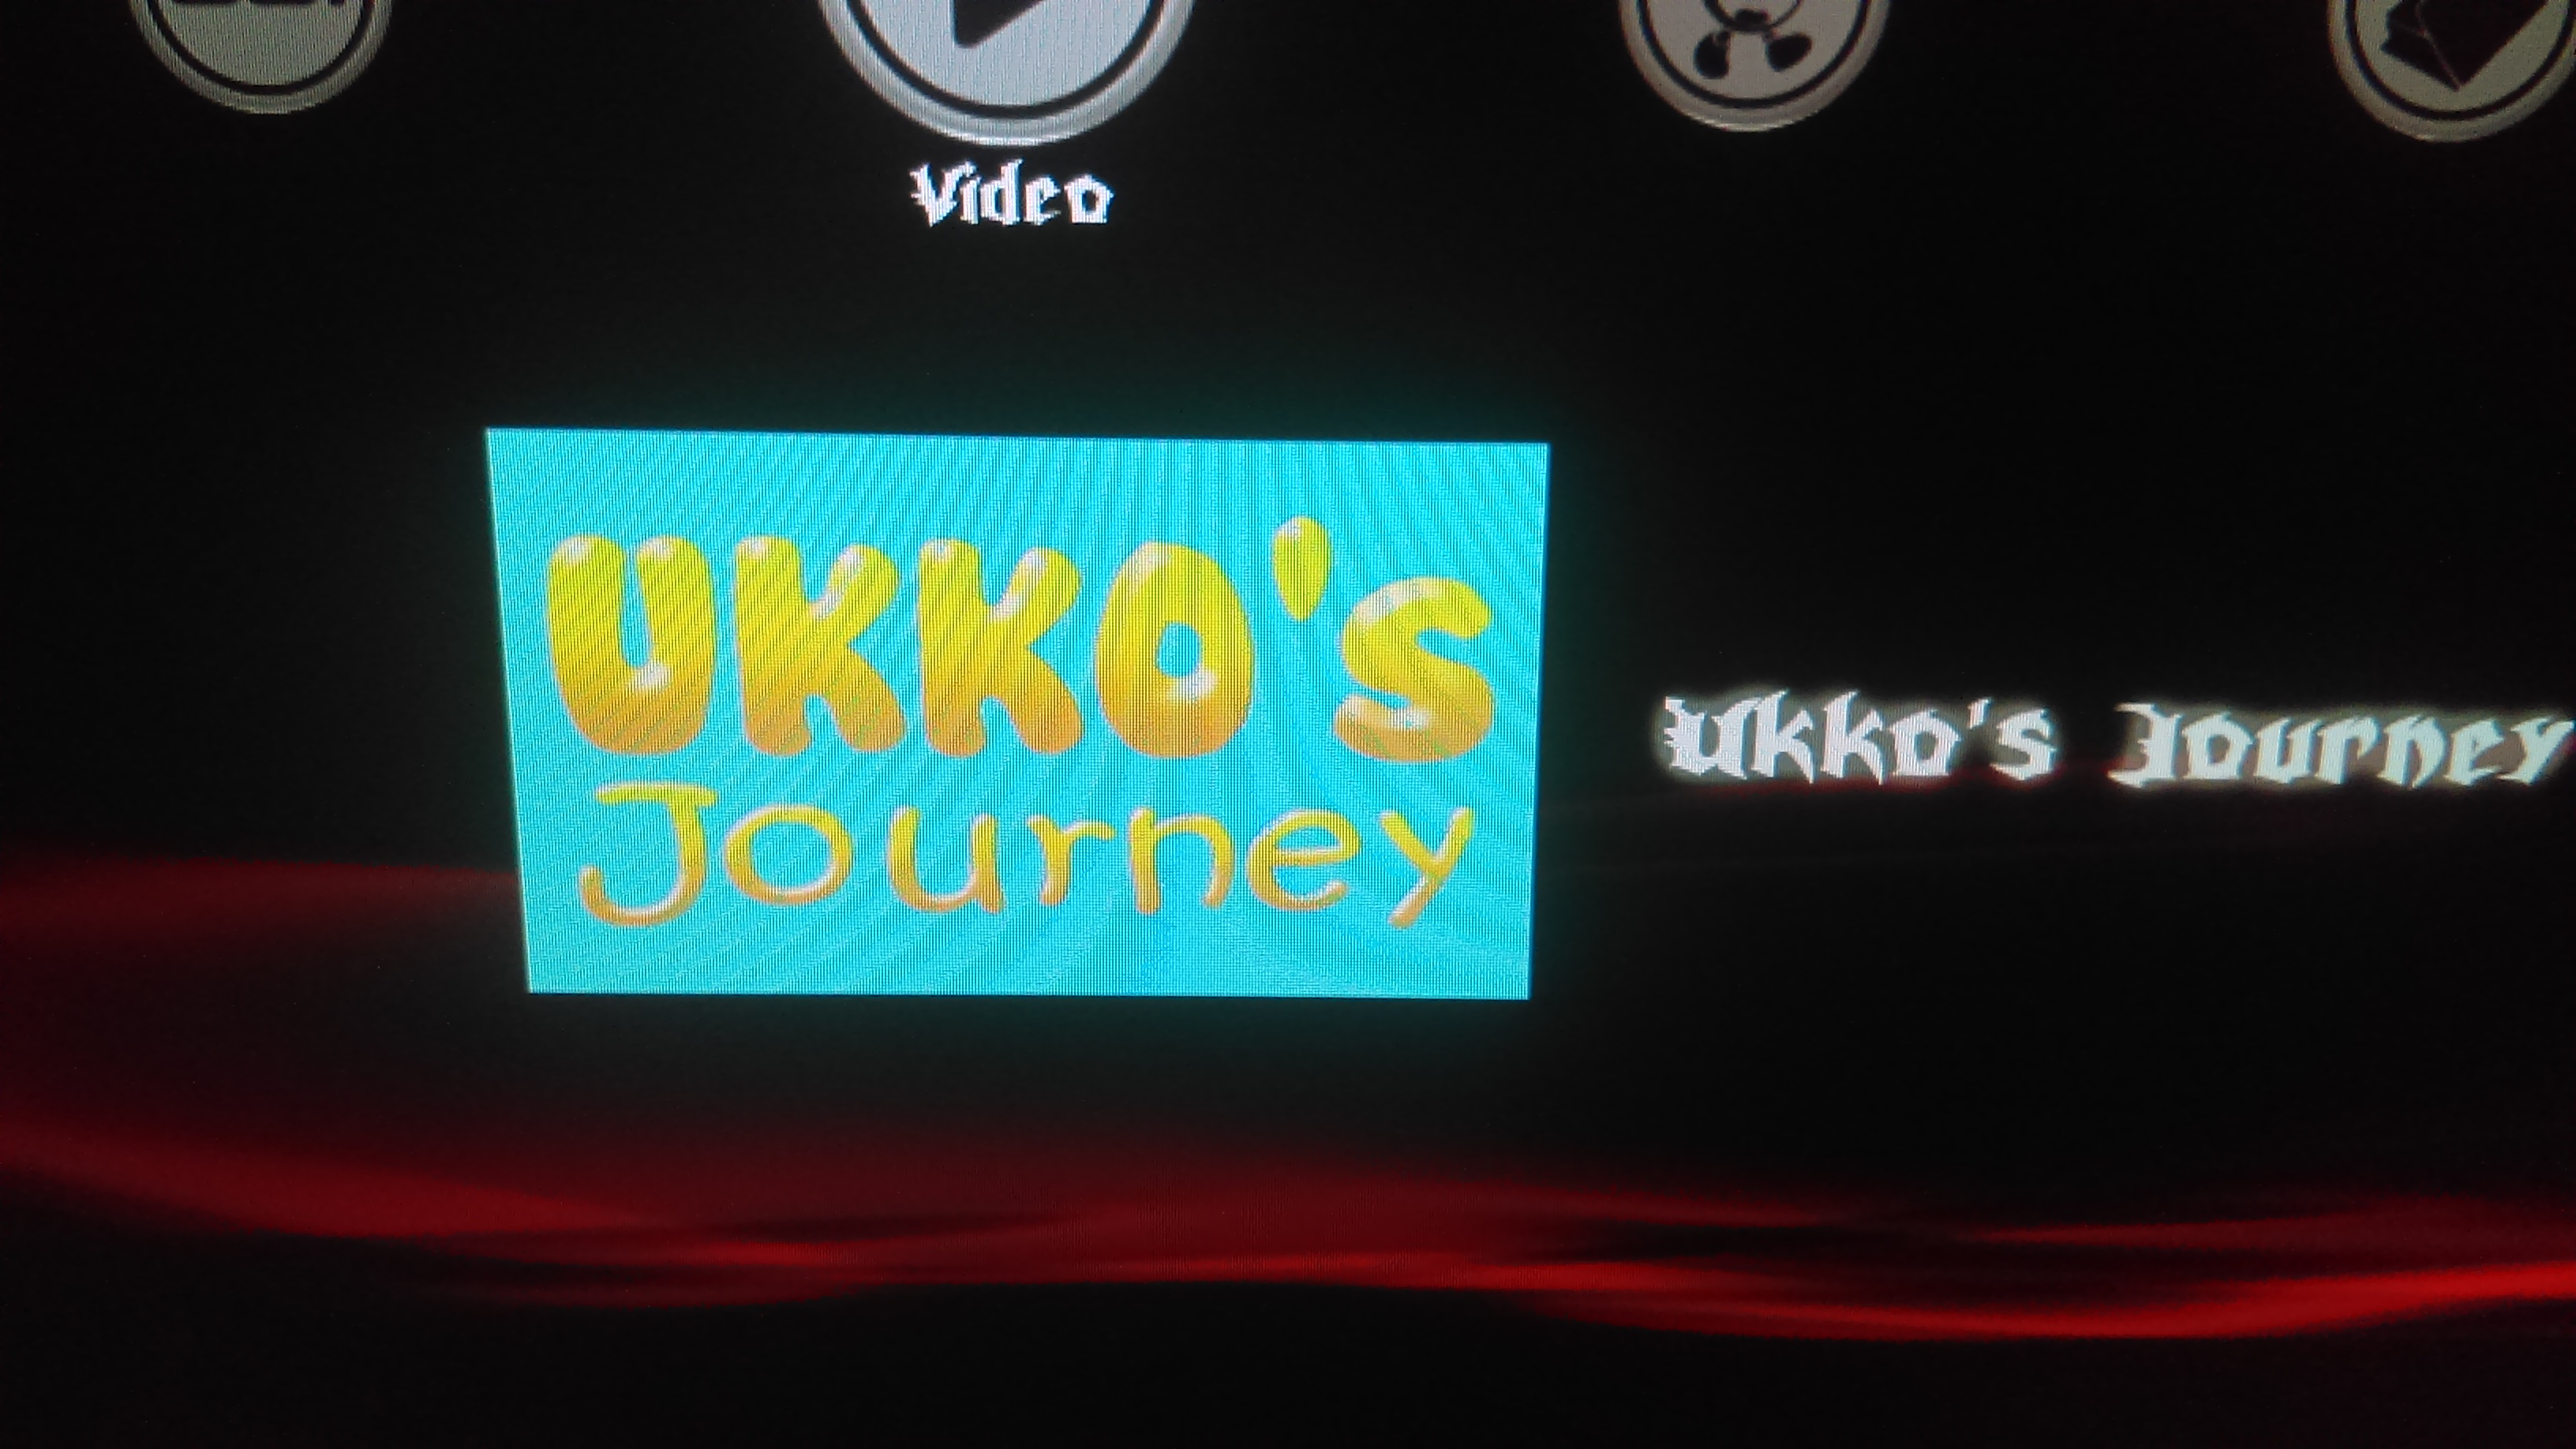 PS4 - Ukko's Journey - BD-J Homebrew Game playable on OFW: PS4/PS3